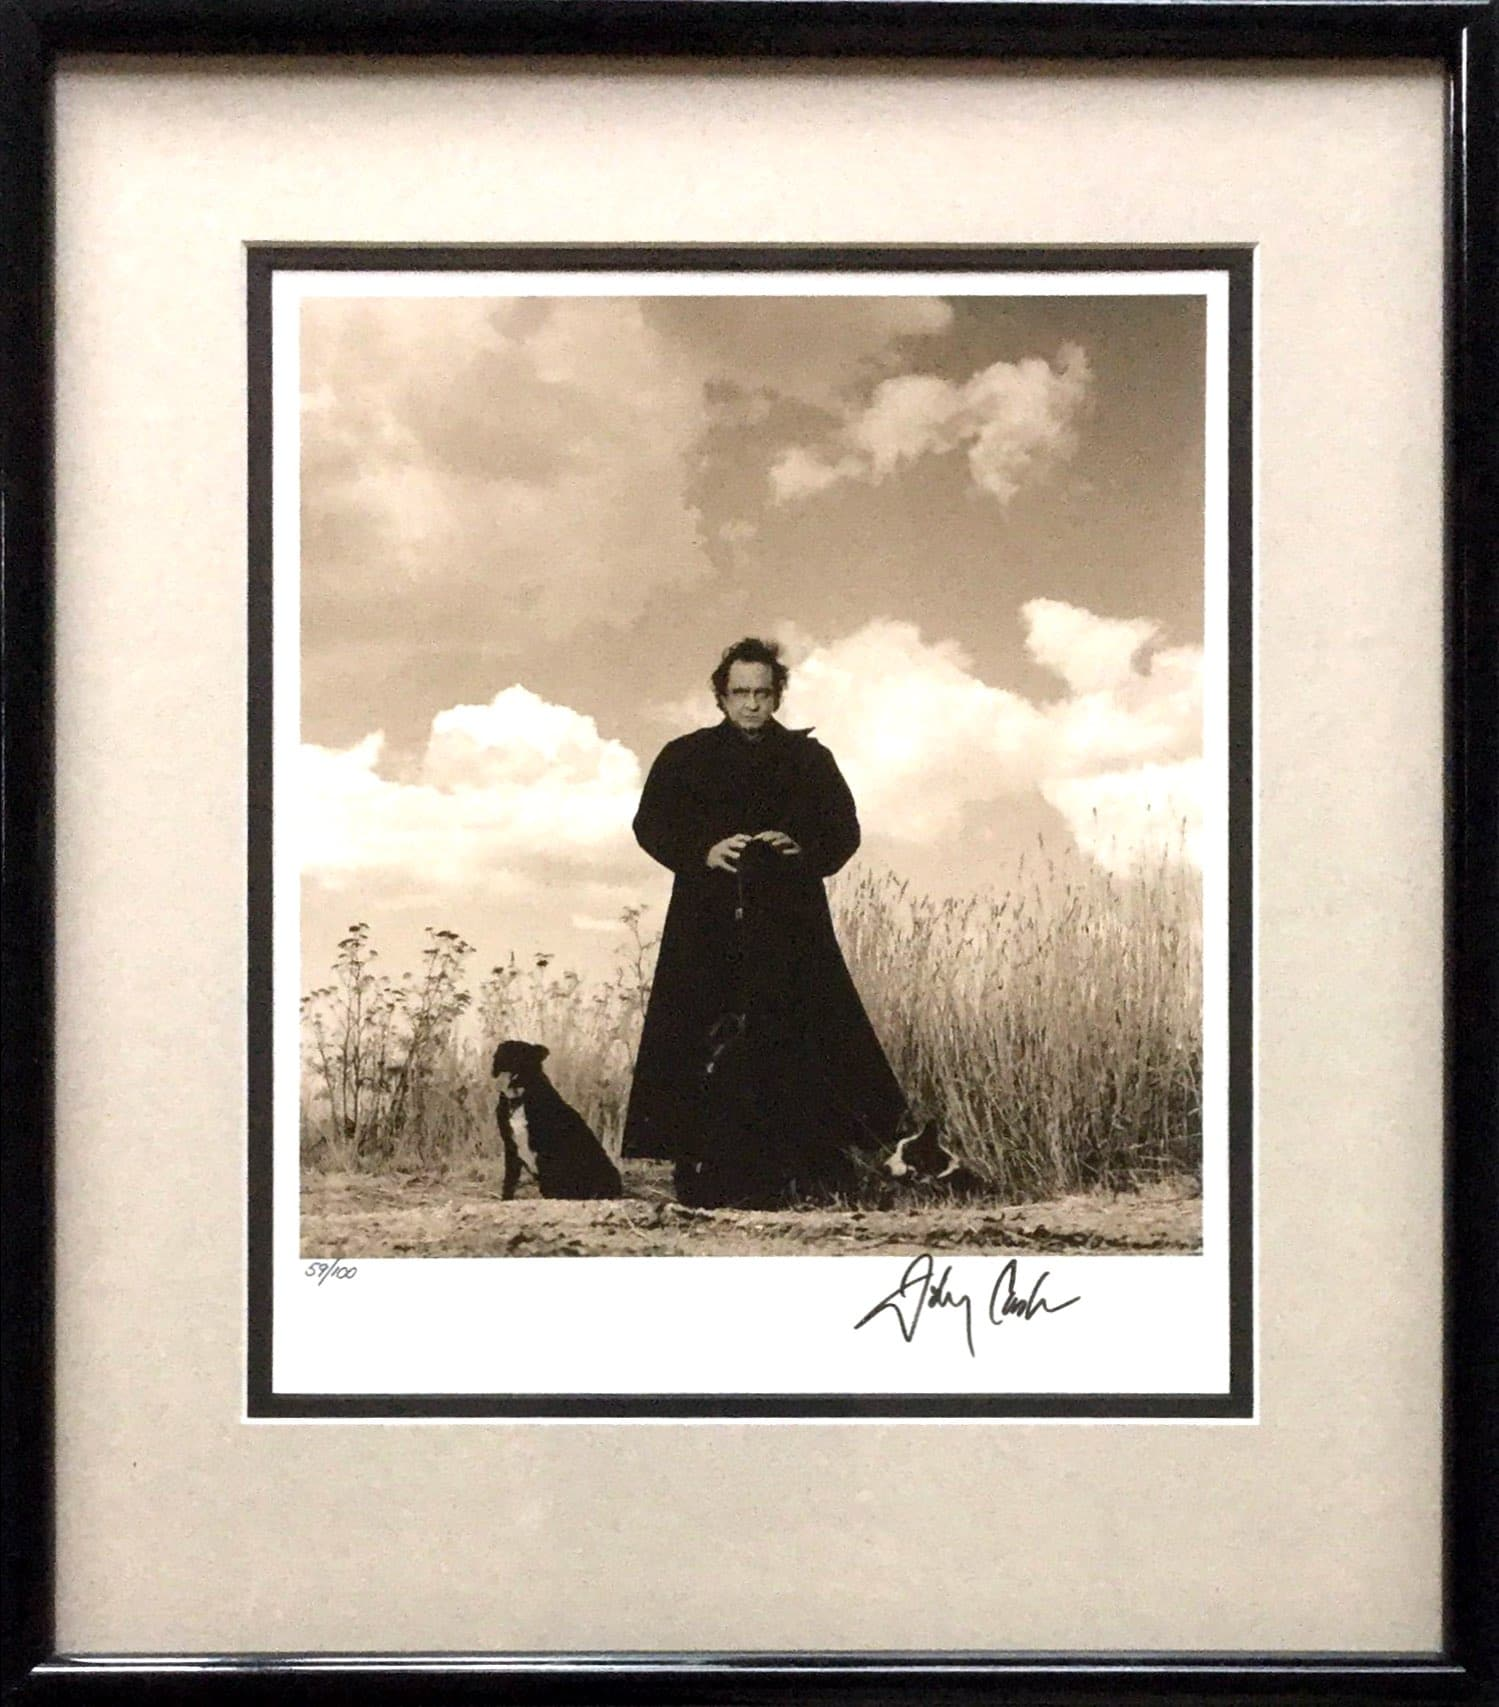 Johnny Cash Signed American Recordings Limited Edition Photograph